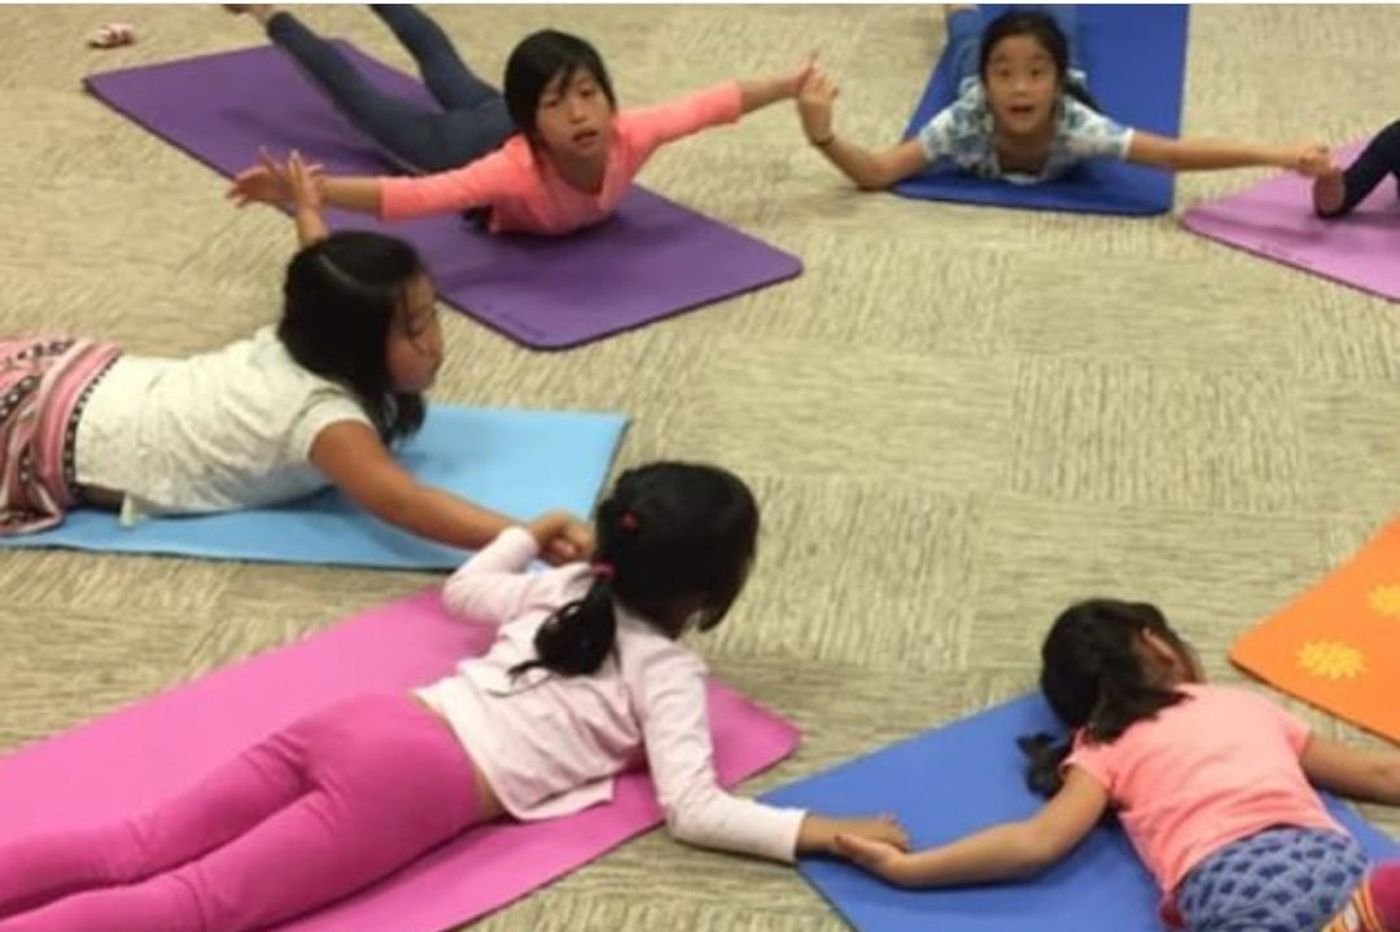 Tykes, tweens, and teens are turning to yoga, federal data show